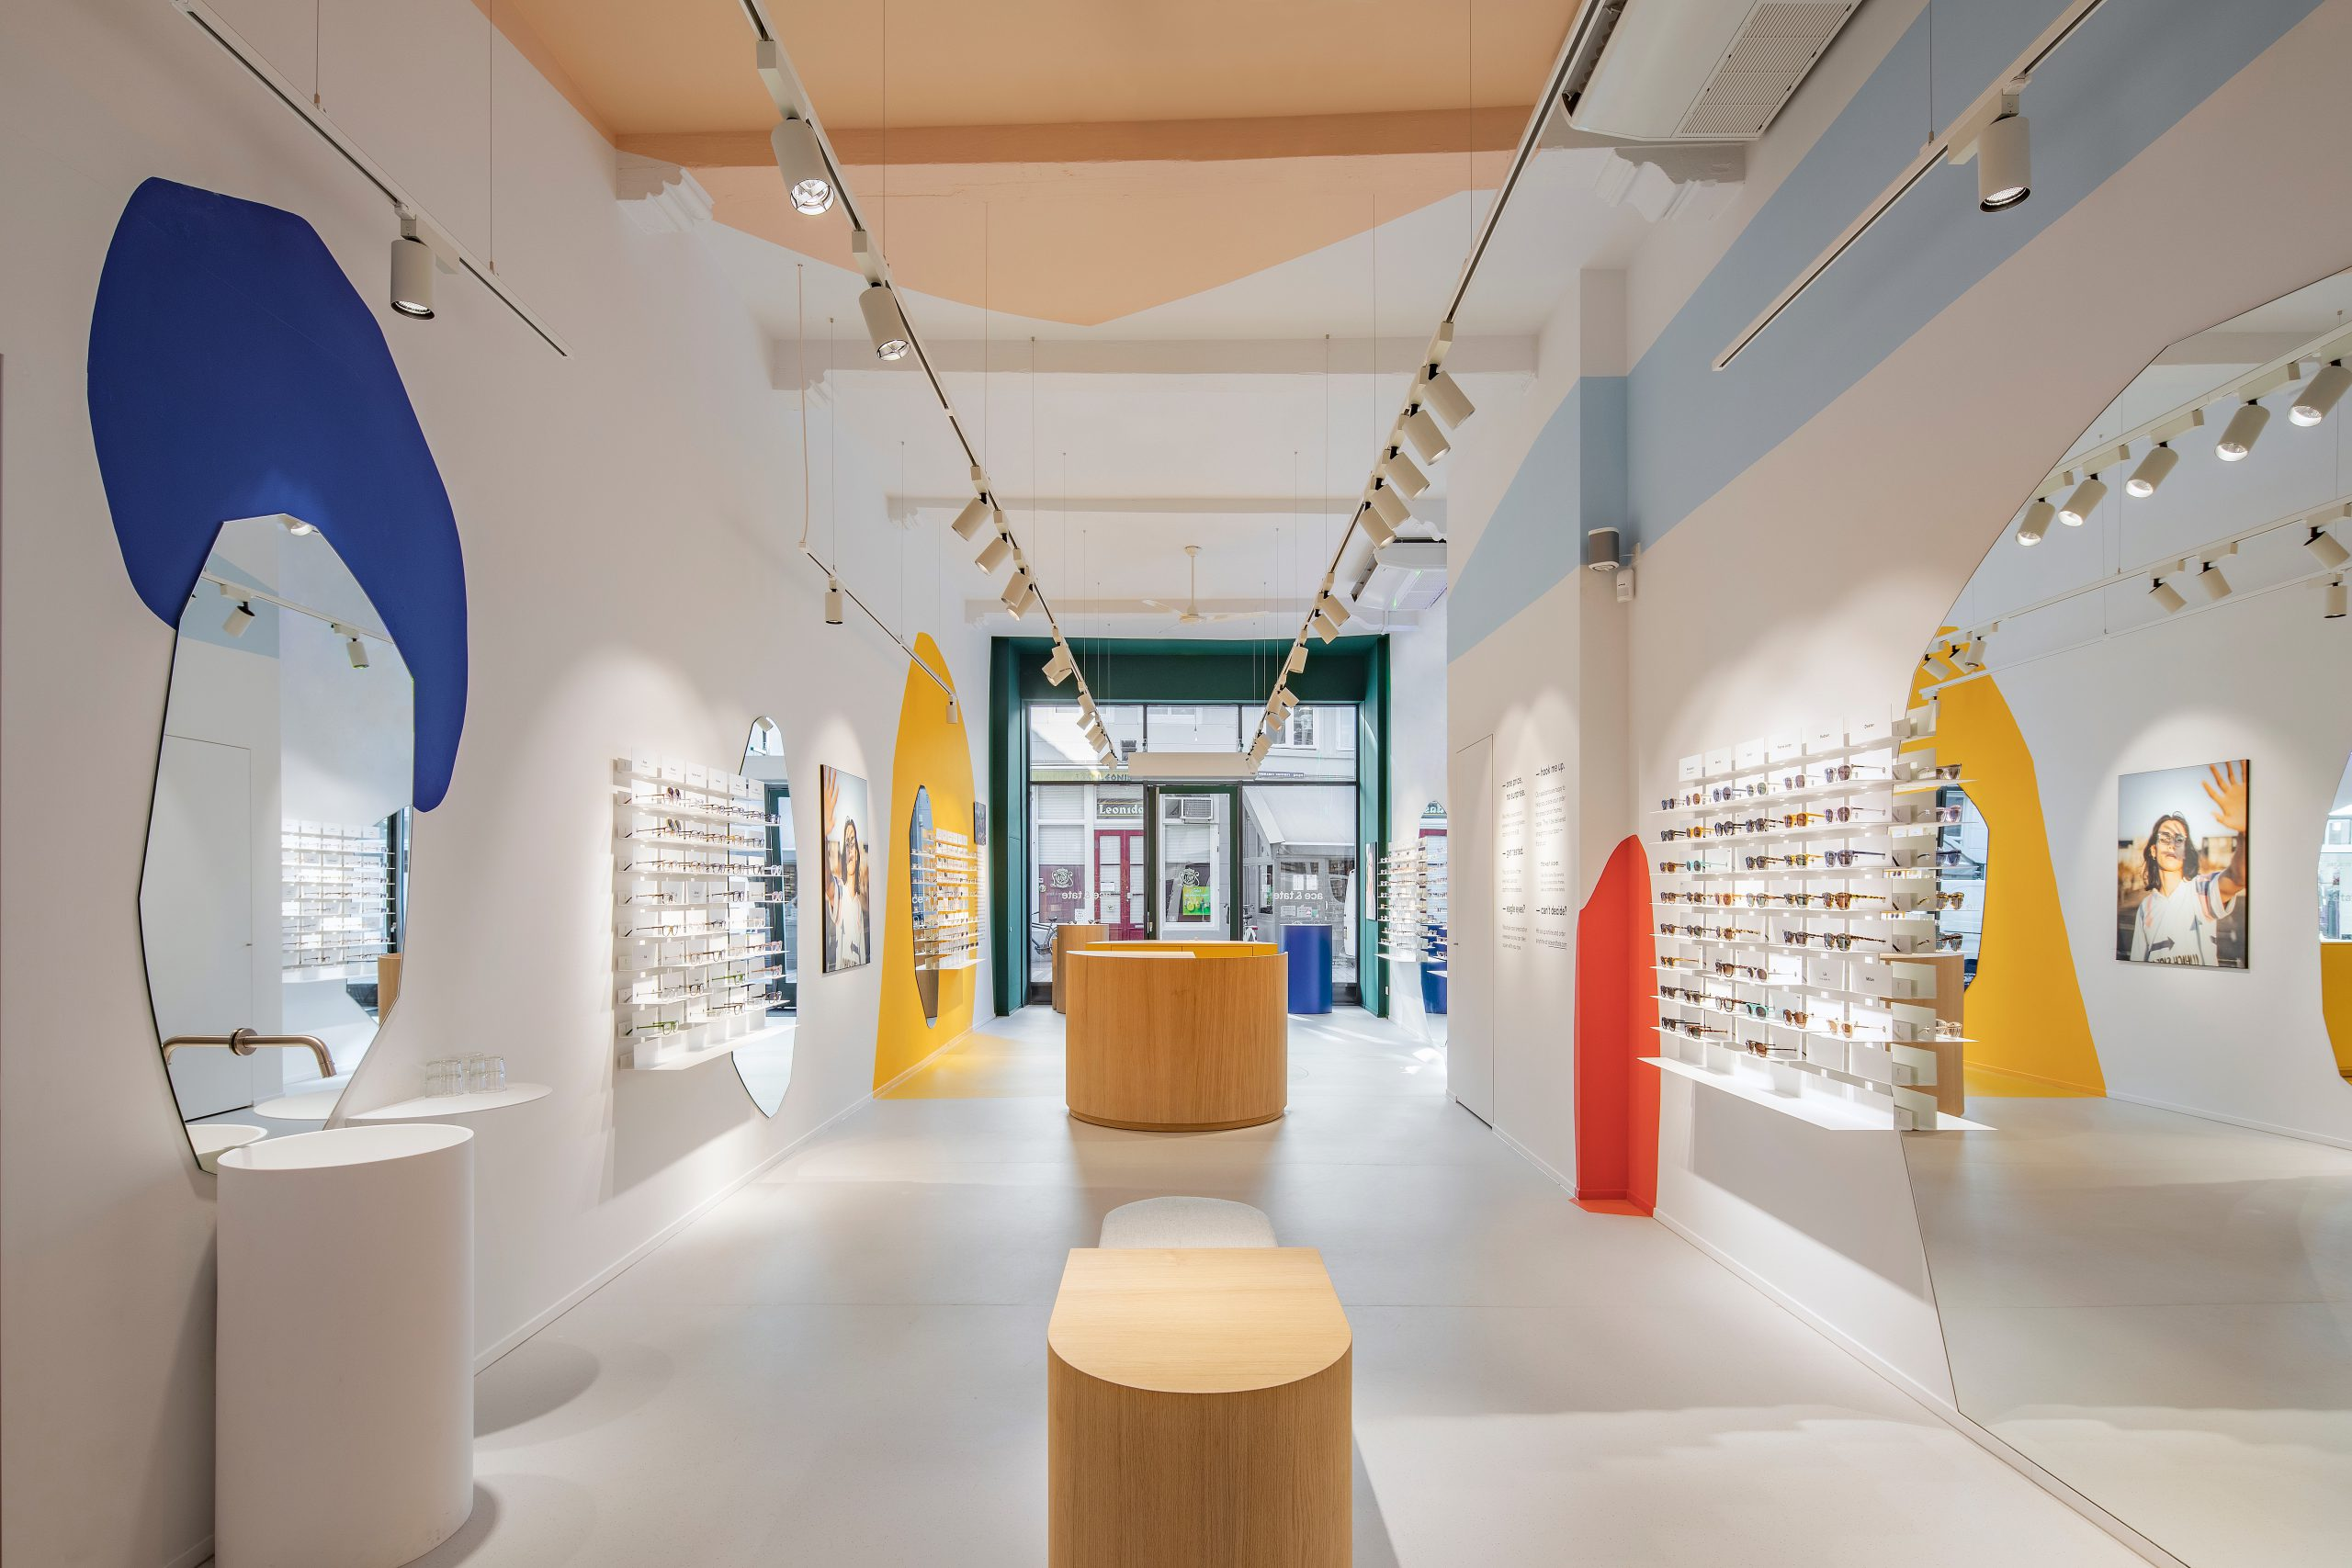 Interior of an eyeglasses store, decorated in reference to the paintings of Hieronymus Bosch